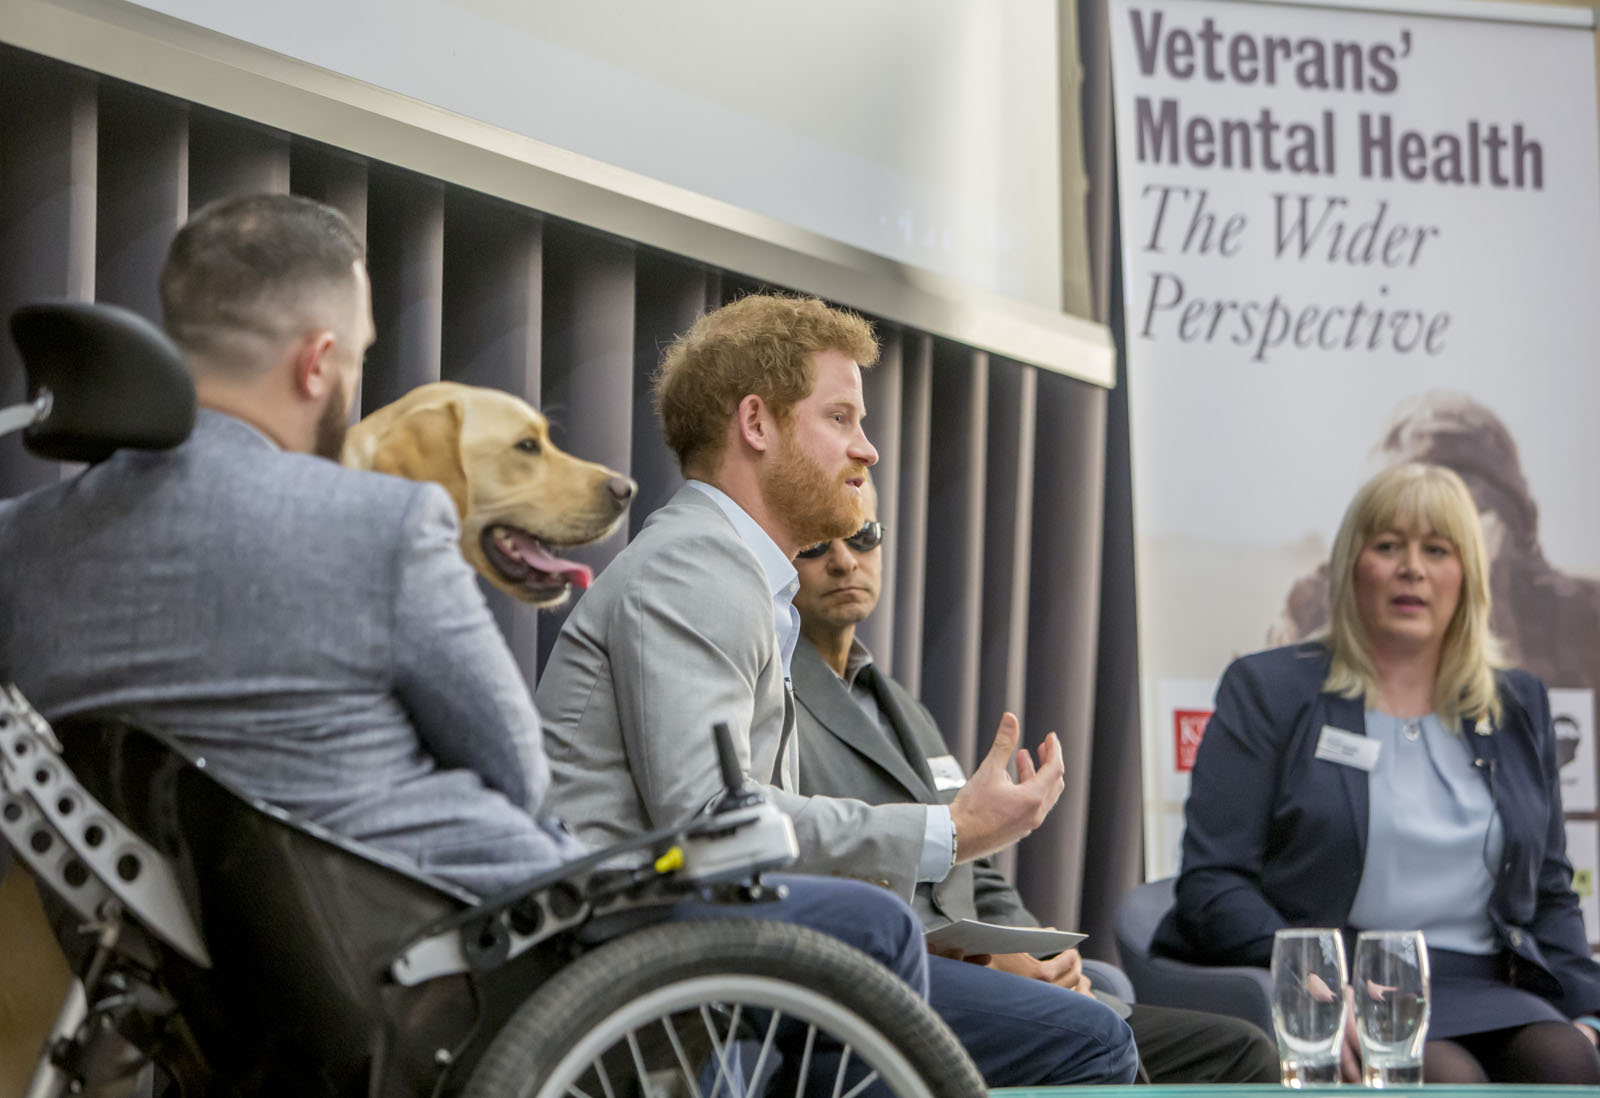 Prince Henry of Wales attended a Military Mental Health Conference